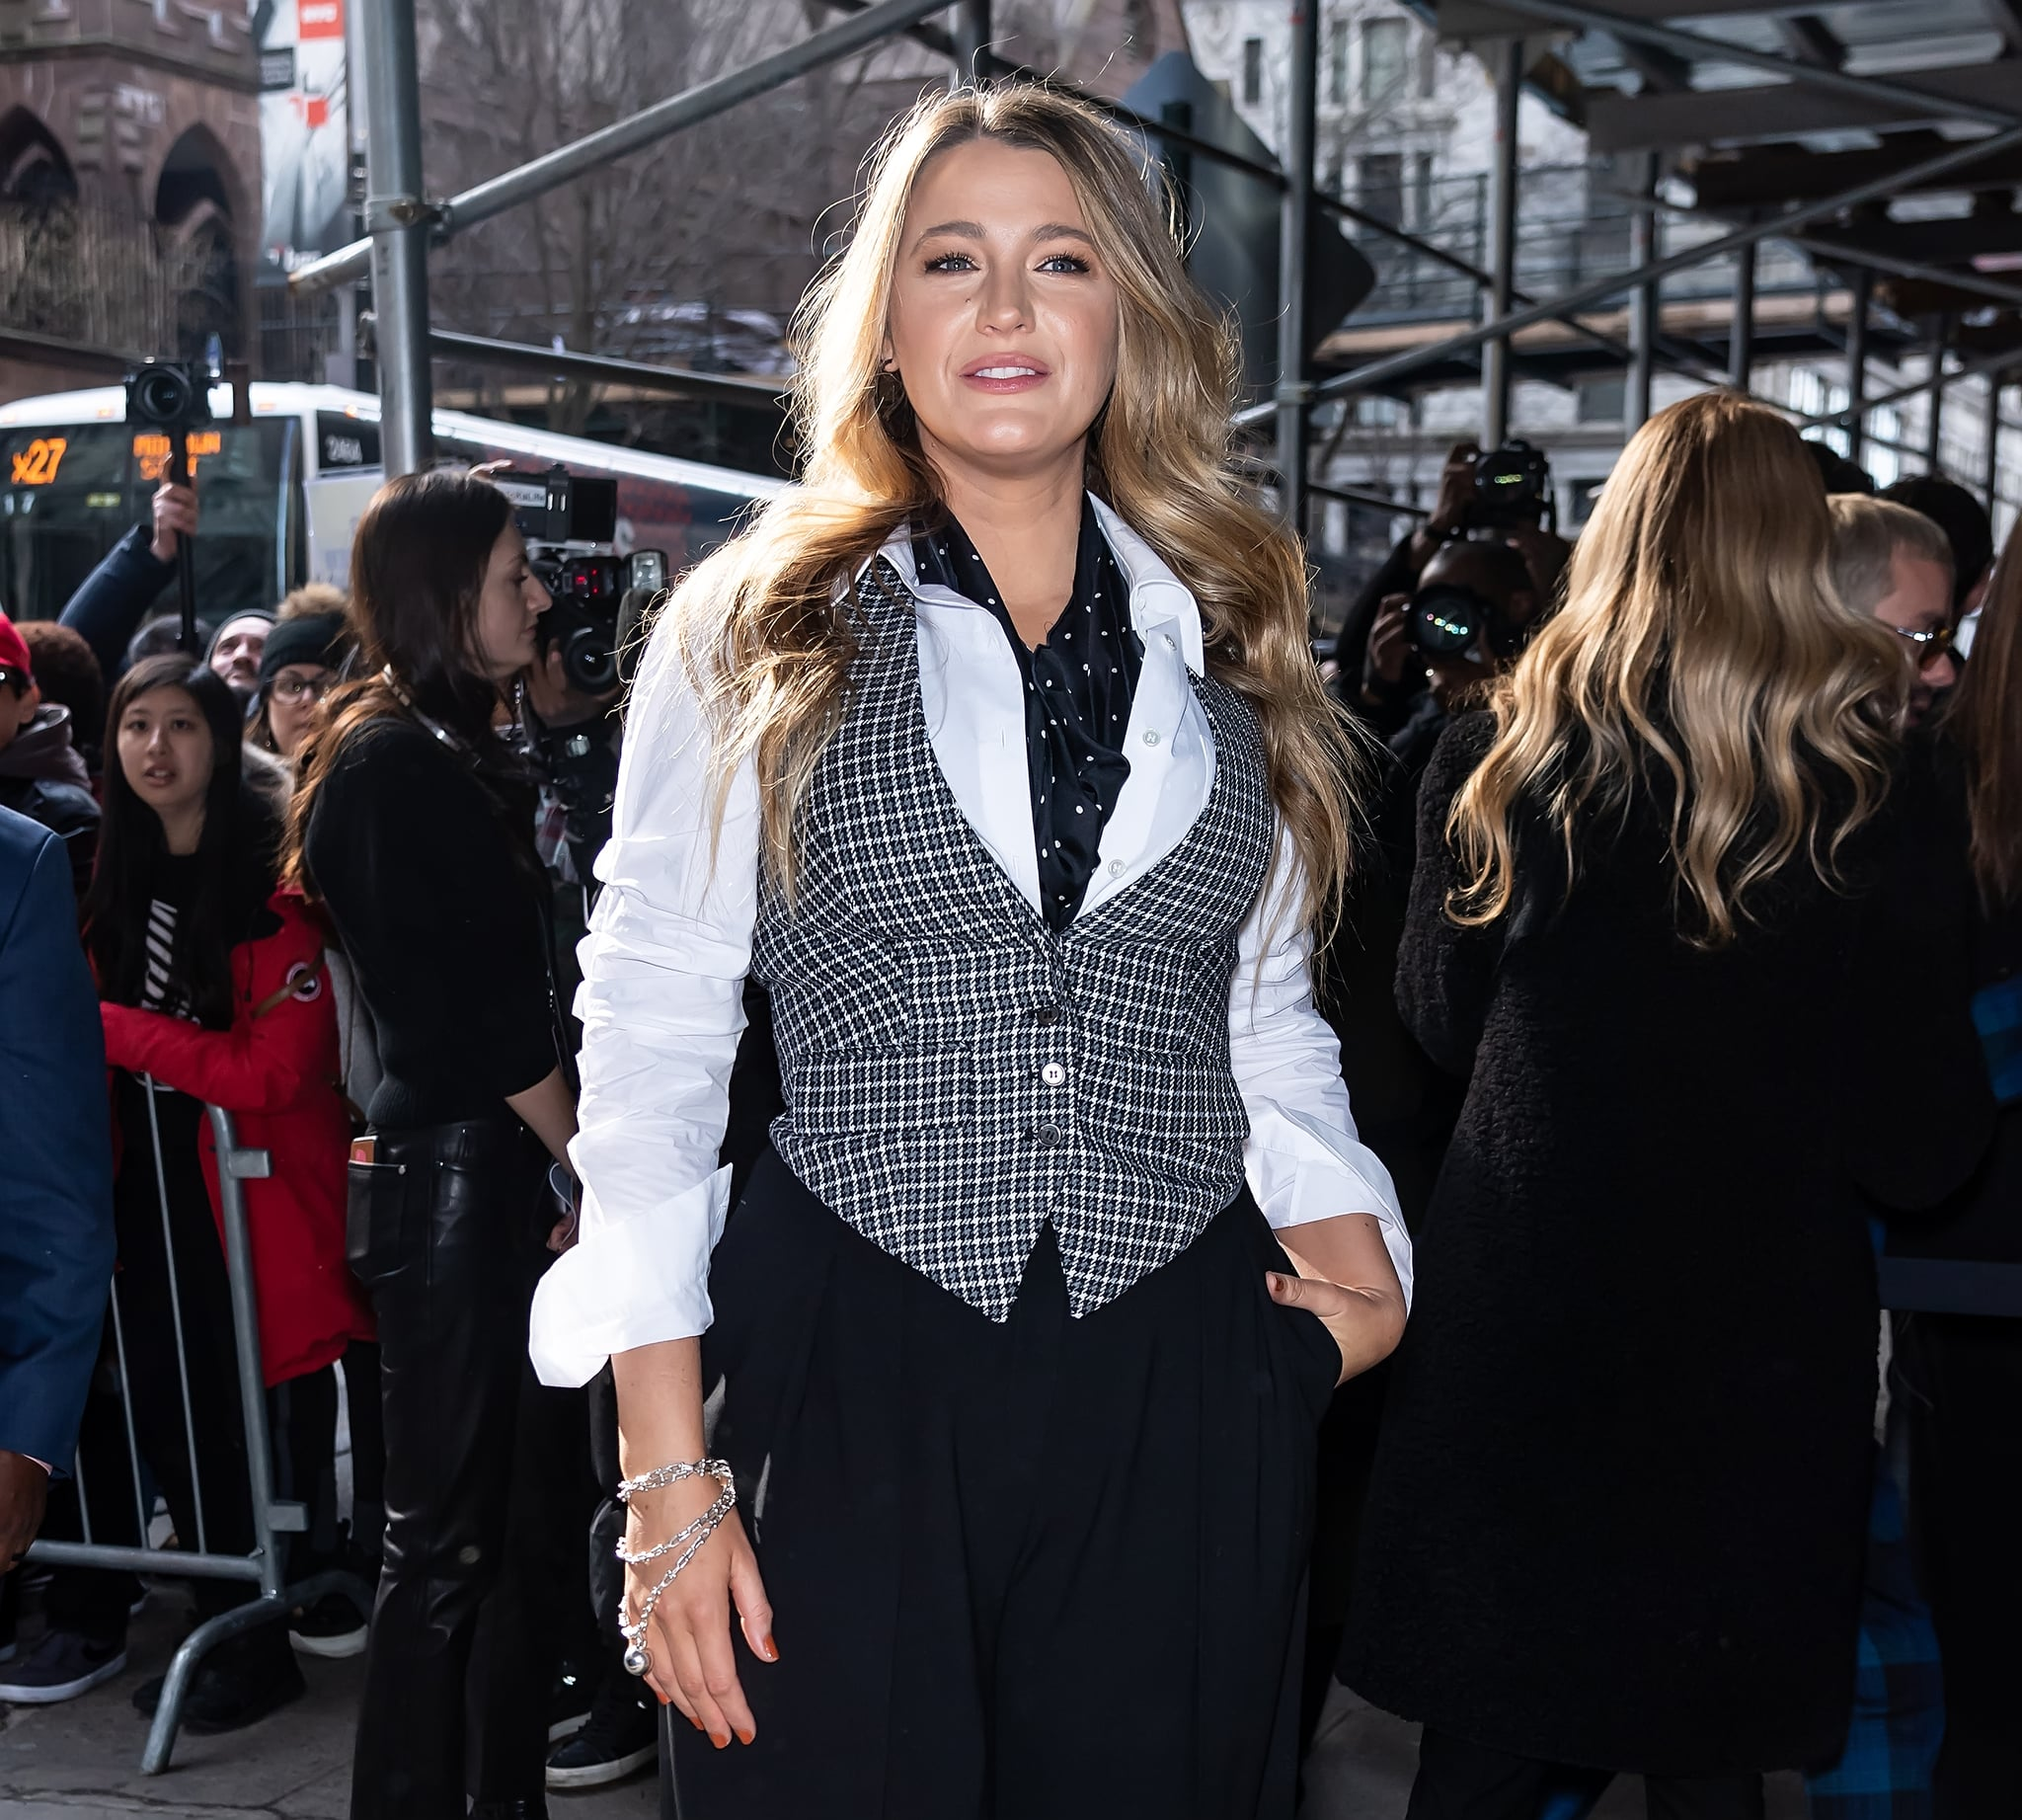 NEW YORK, NEW YORK - FEBRUARY 12: Actress Blake Lively is seen arriving to the Michael Kors FW20 Runway Show on February 12, 2020 in New York City. (Photo by Gilbert Carrasquillo/GC Images)